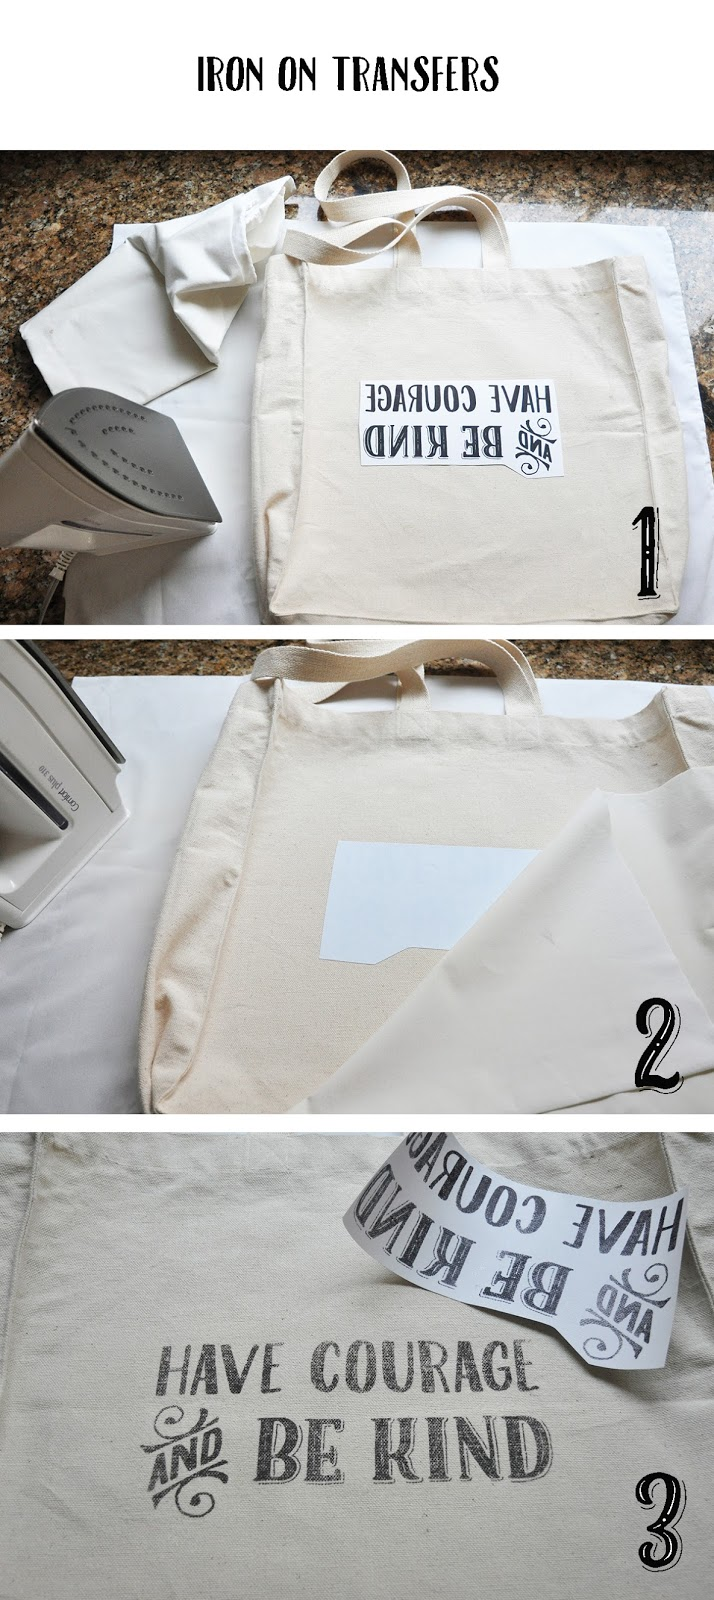 diy tote bags - canvas bags & iron on transfers | Lorrie Everitt Studio